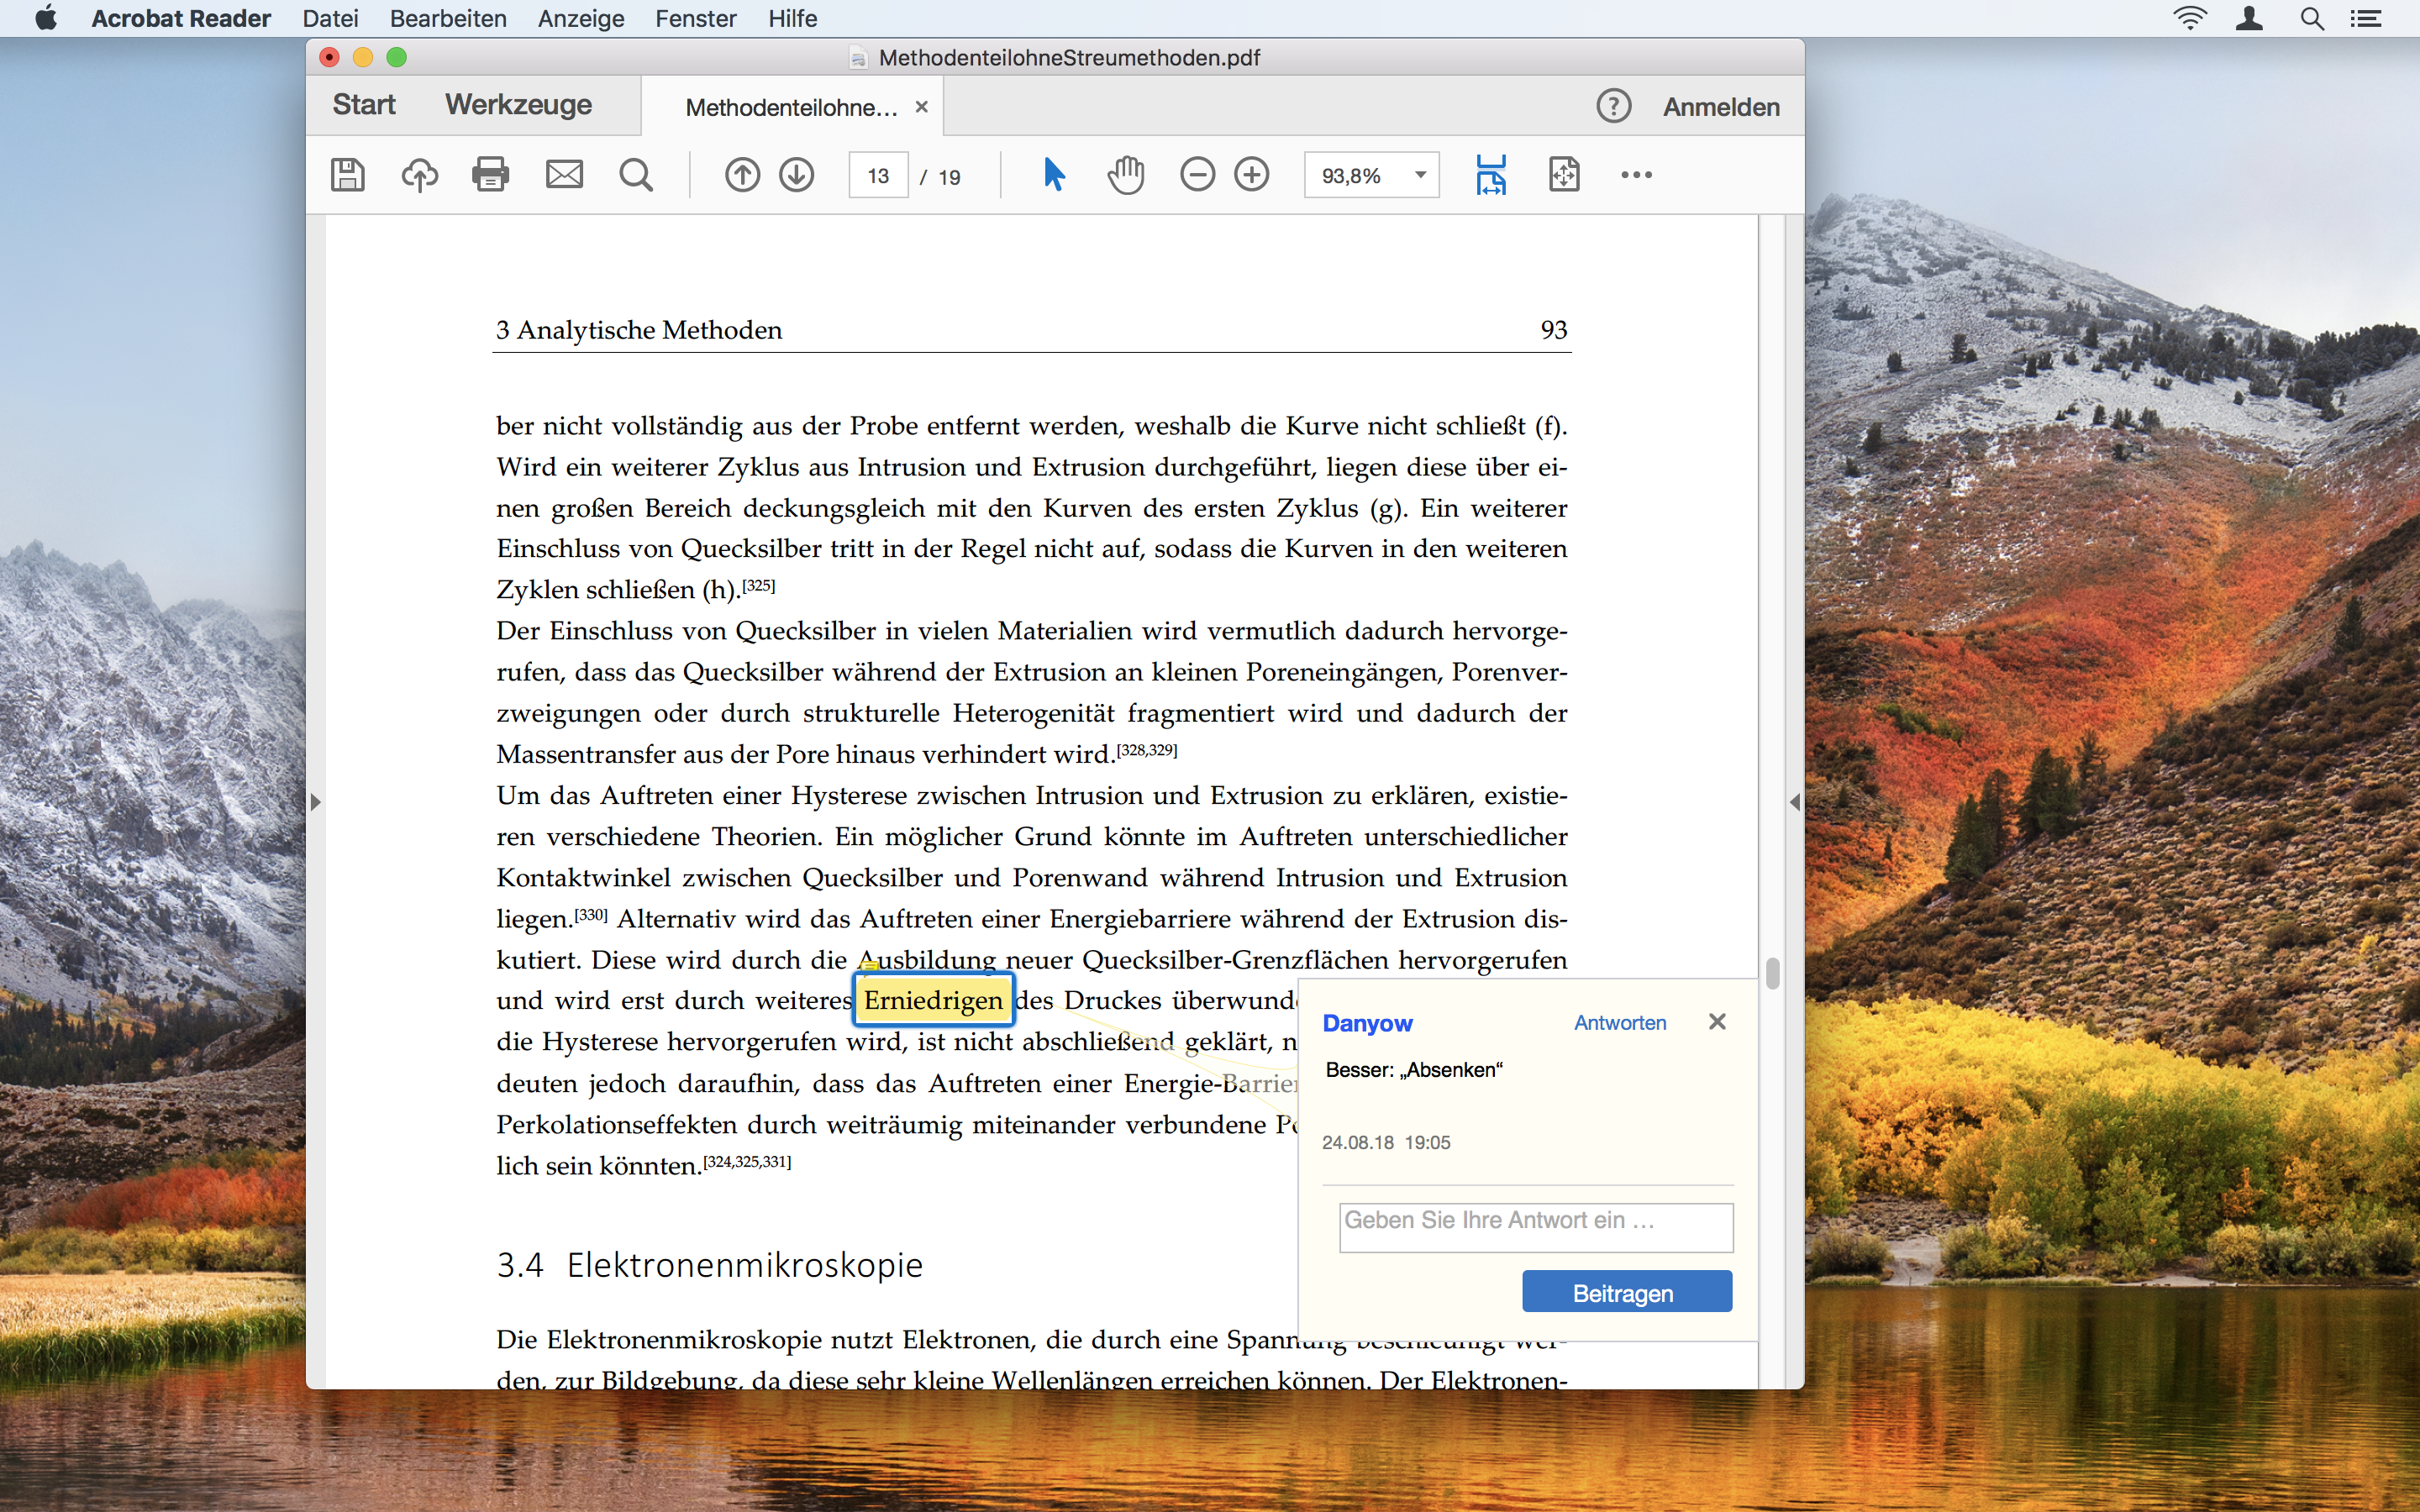 Screen Grab: Commented highlight in Adobe Acrobat Reader